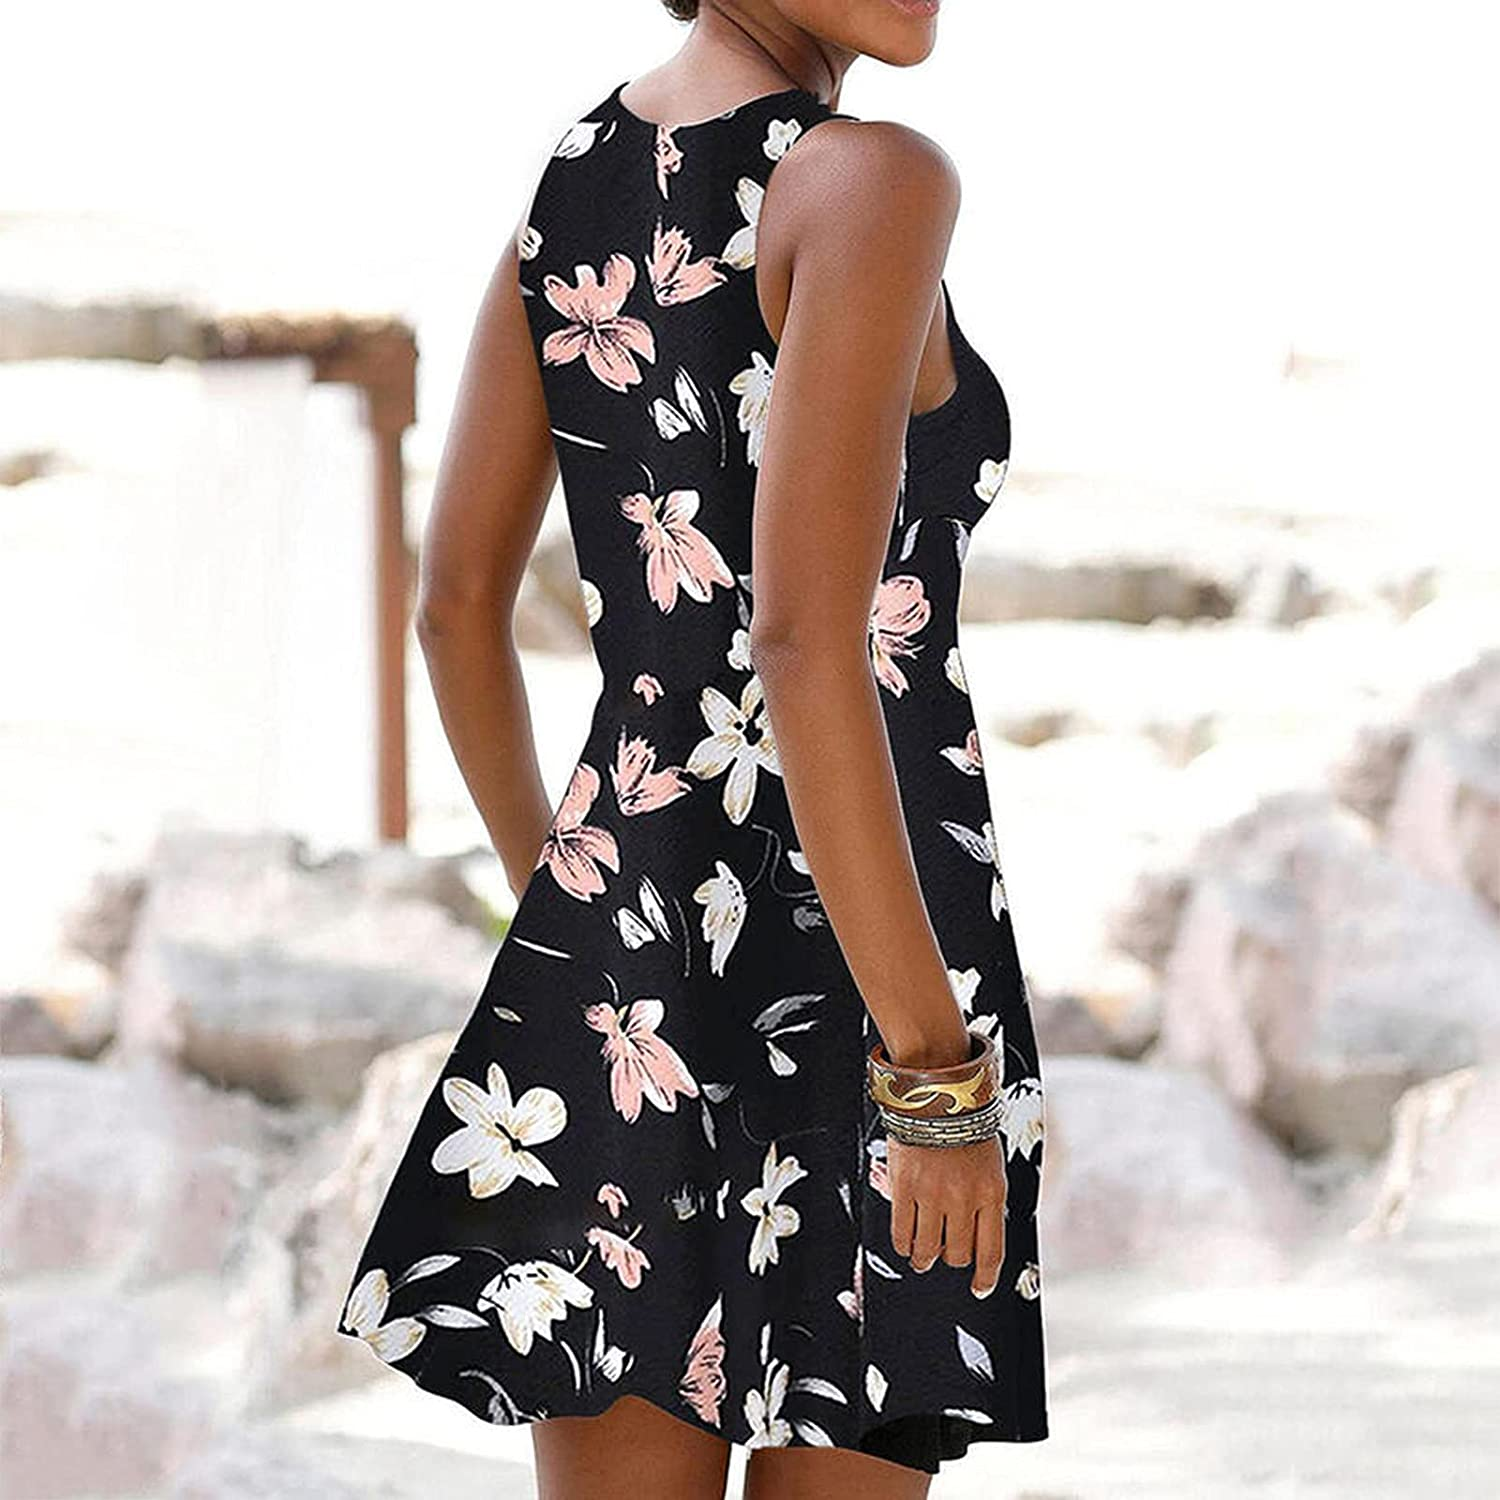 XYING Women's Summer Tank Dresses Casual Sleeveless Sundress Loose Fit Crew Neck Sexy Midi Dress Floral Printed Beach Dress